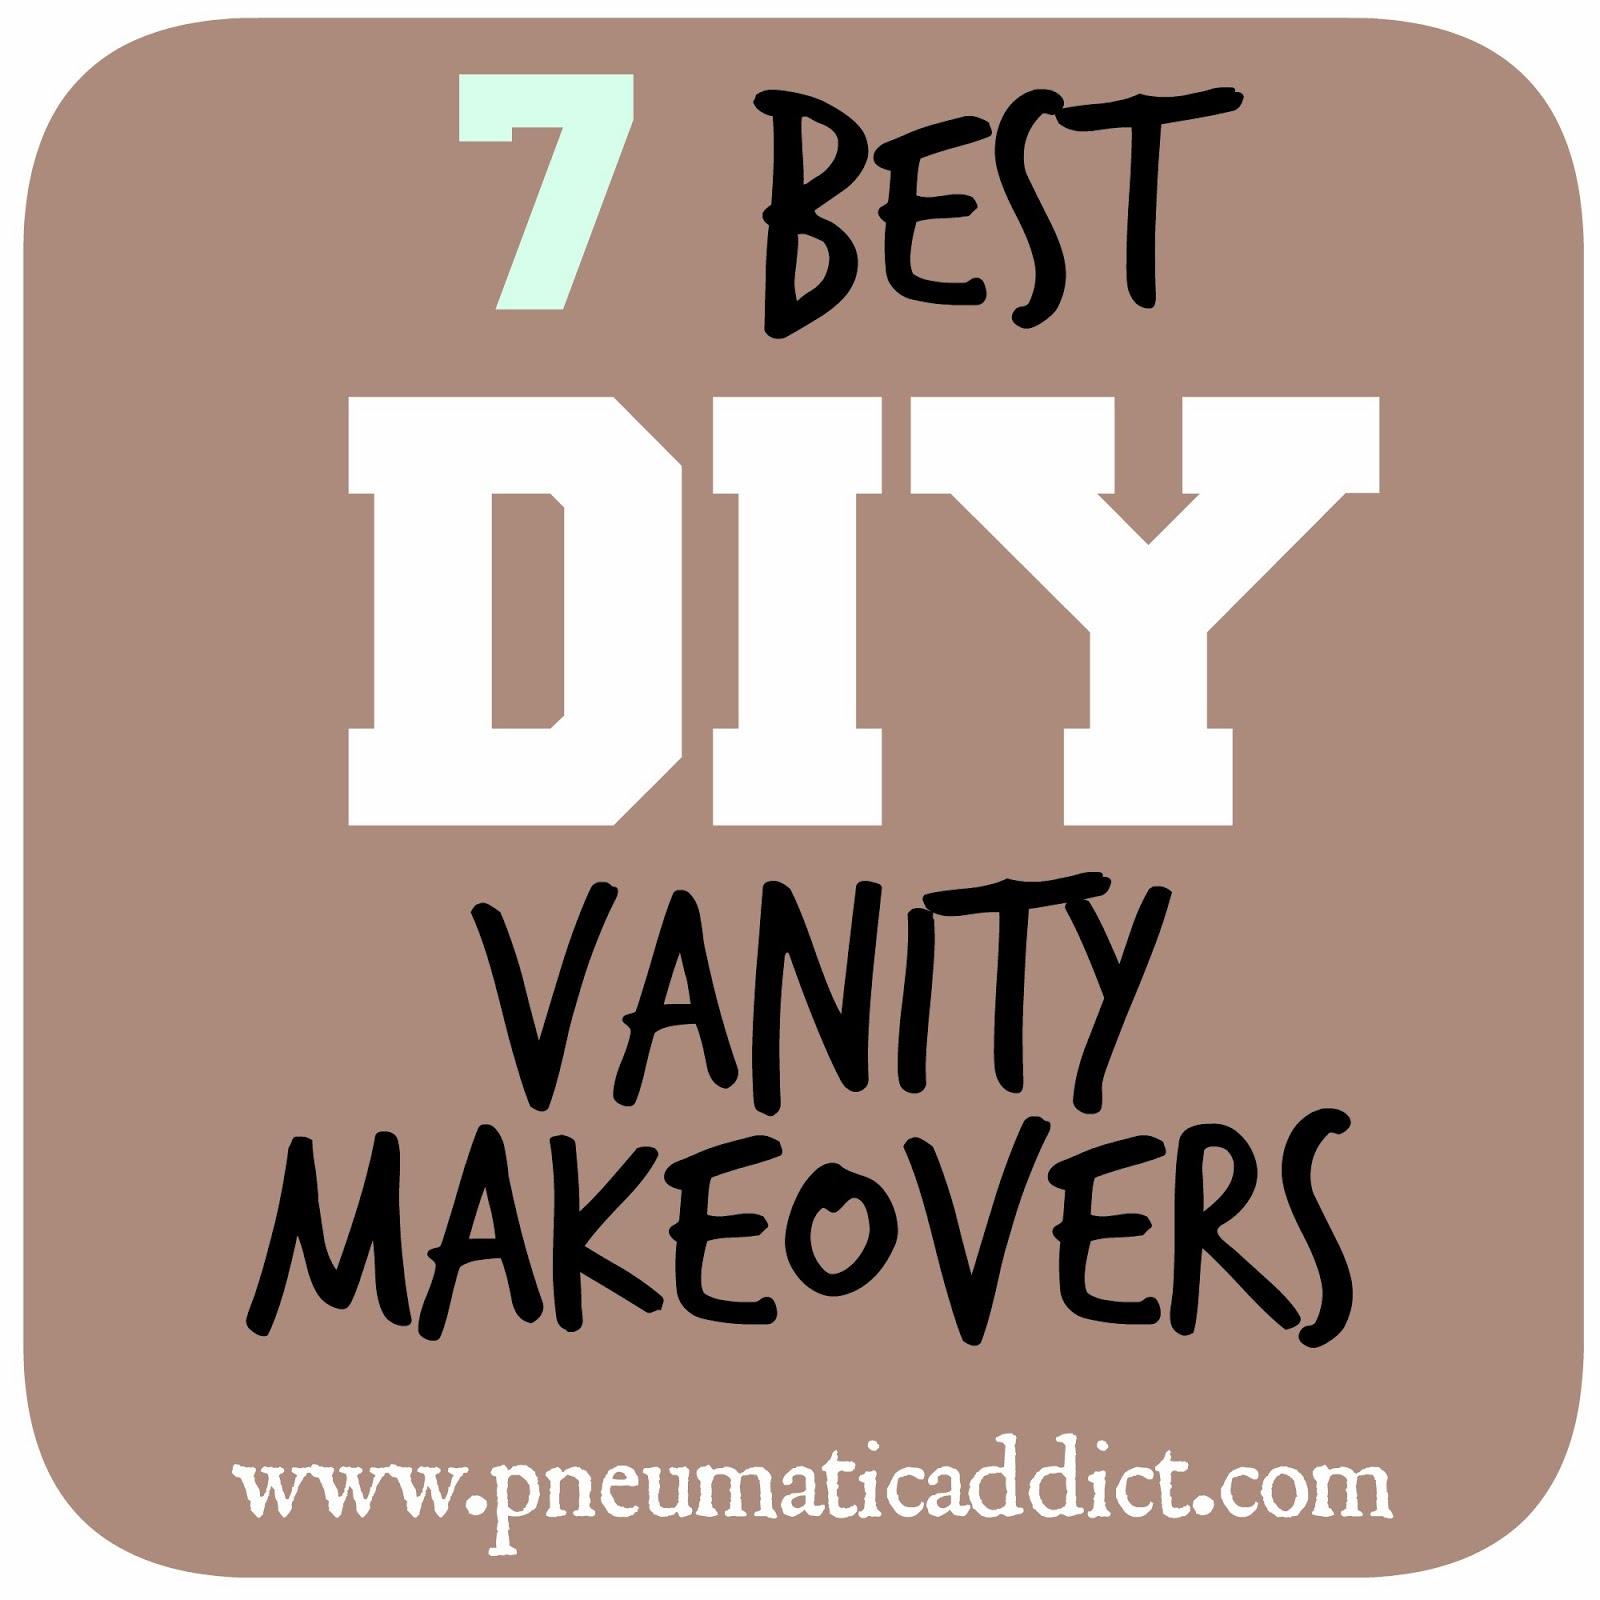 7 Best DIY Bathroom Vanity Makeovers. Pneumatic Addict   7 Best DIY Bathroom Vanity Makeovers